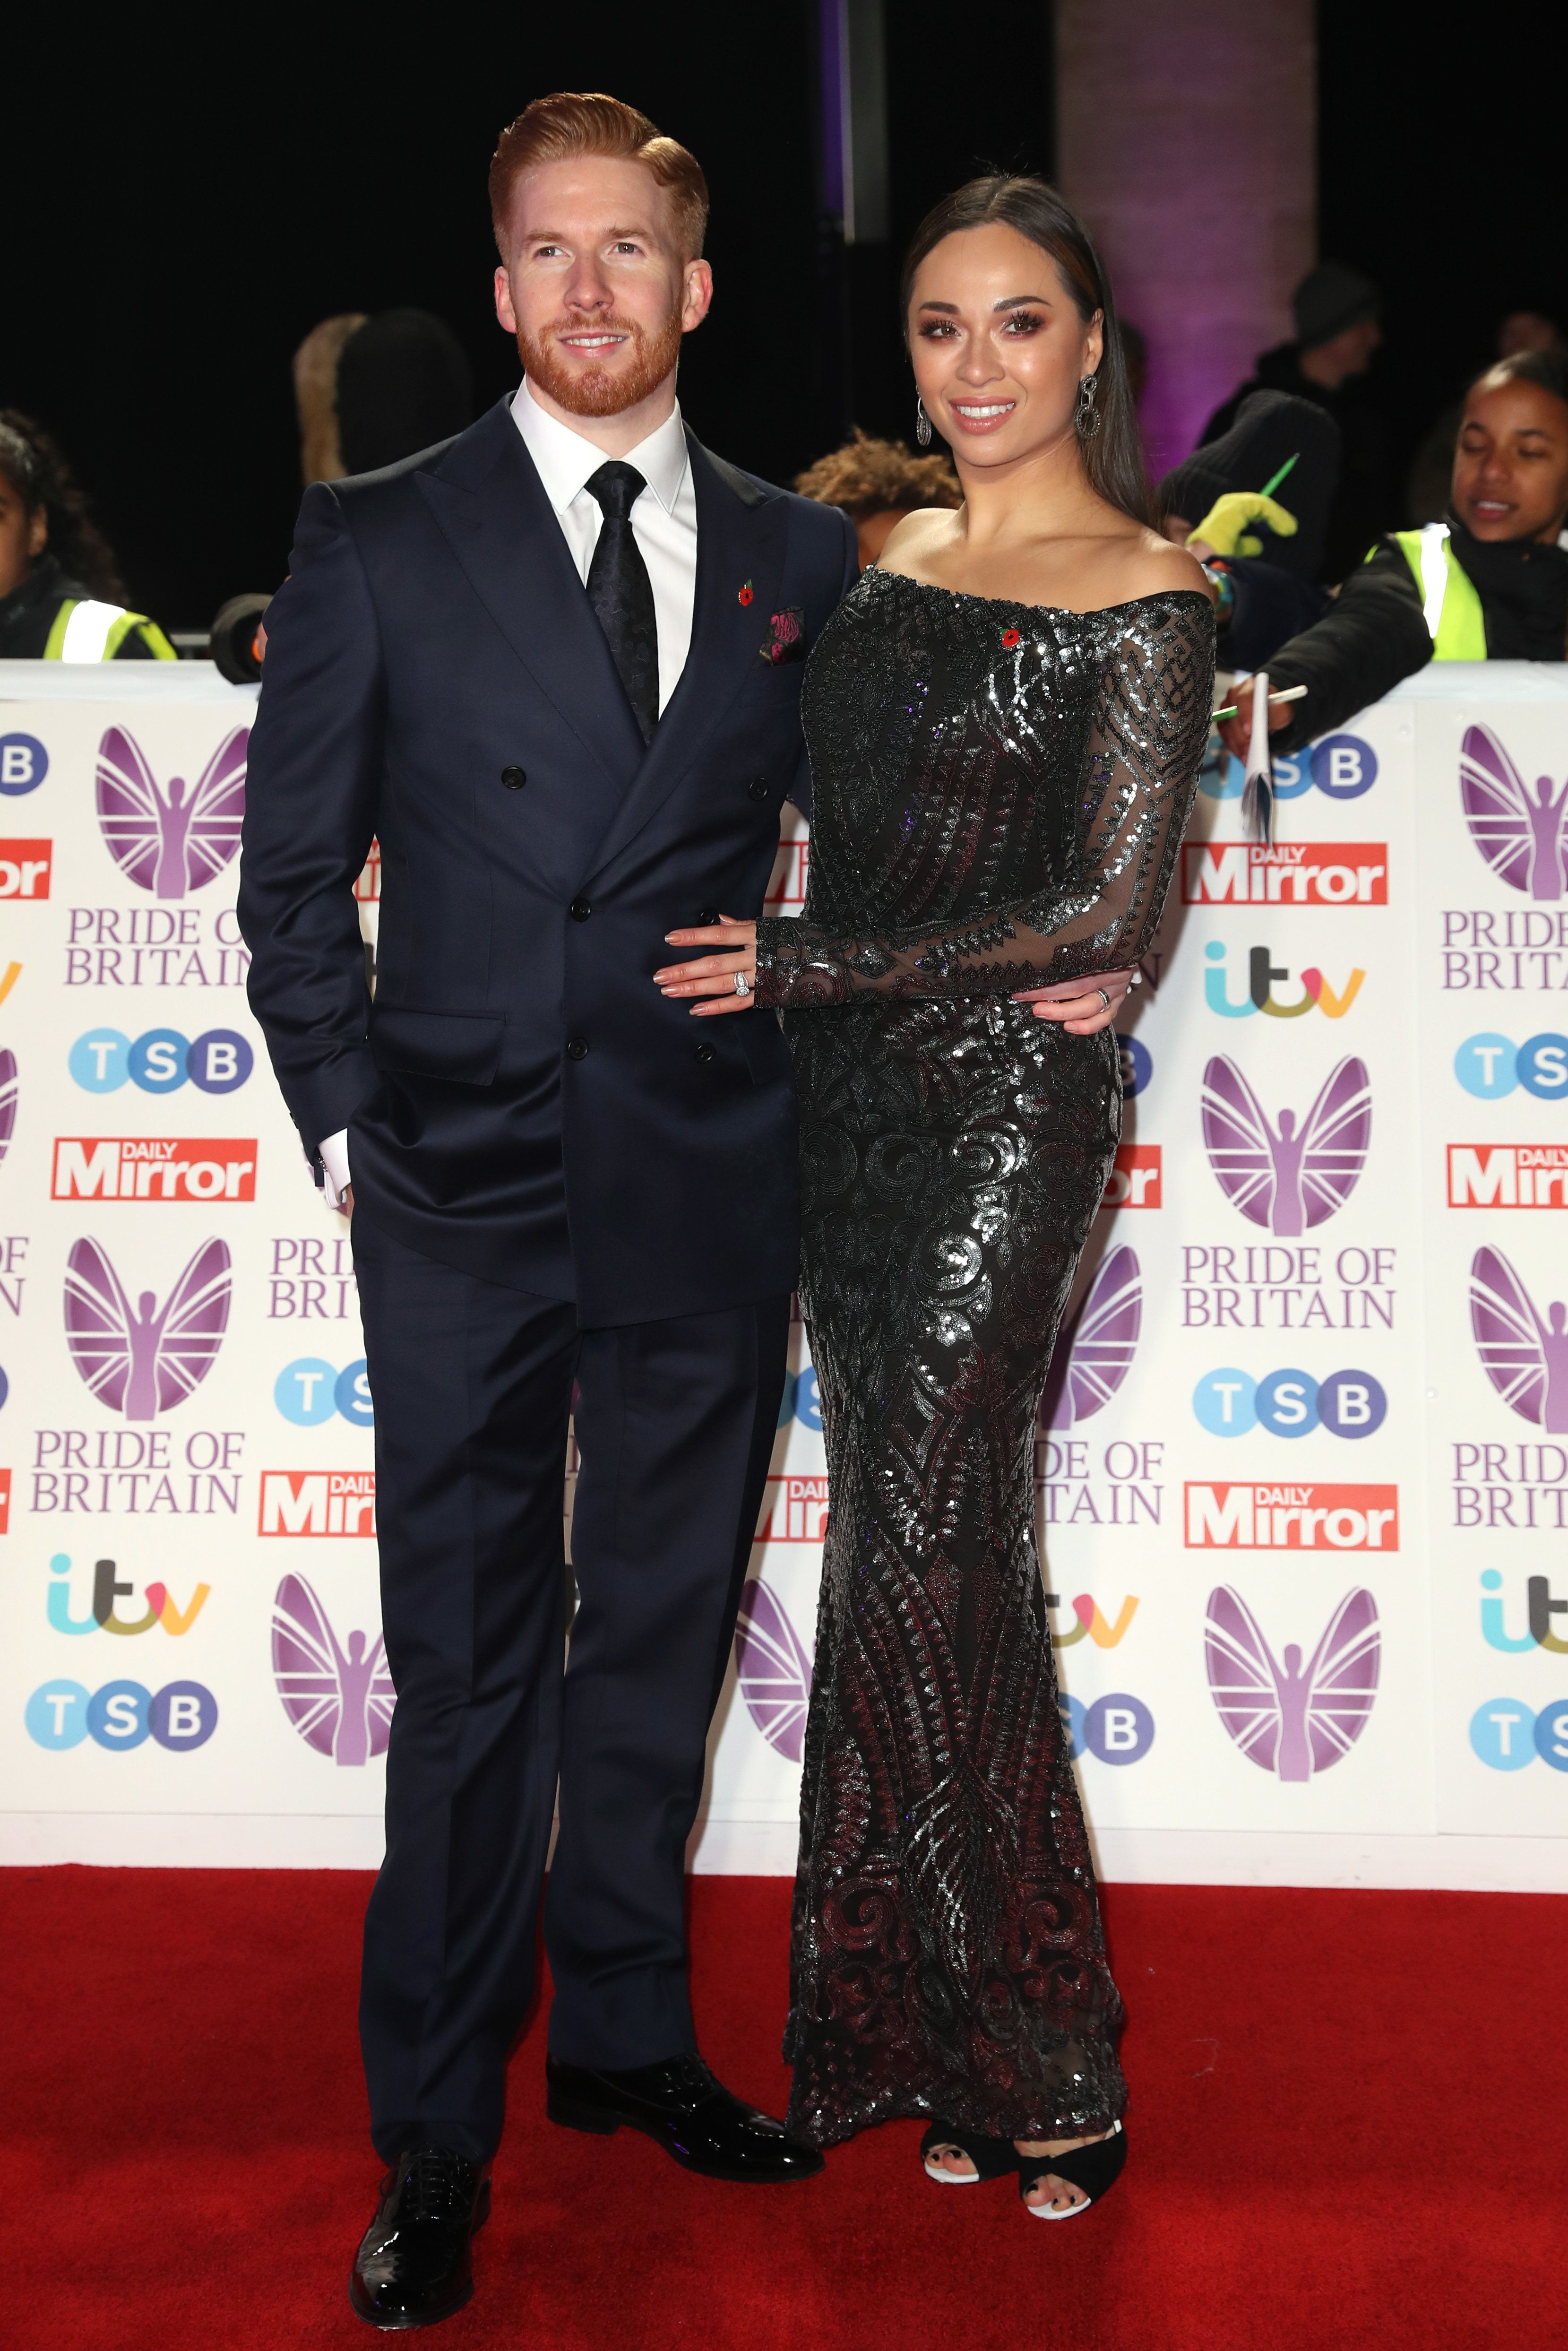 'Strictly' Pro Katya Jones Says She Wants A Baby With Husband Neil 'In Near Future'